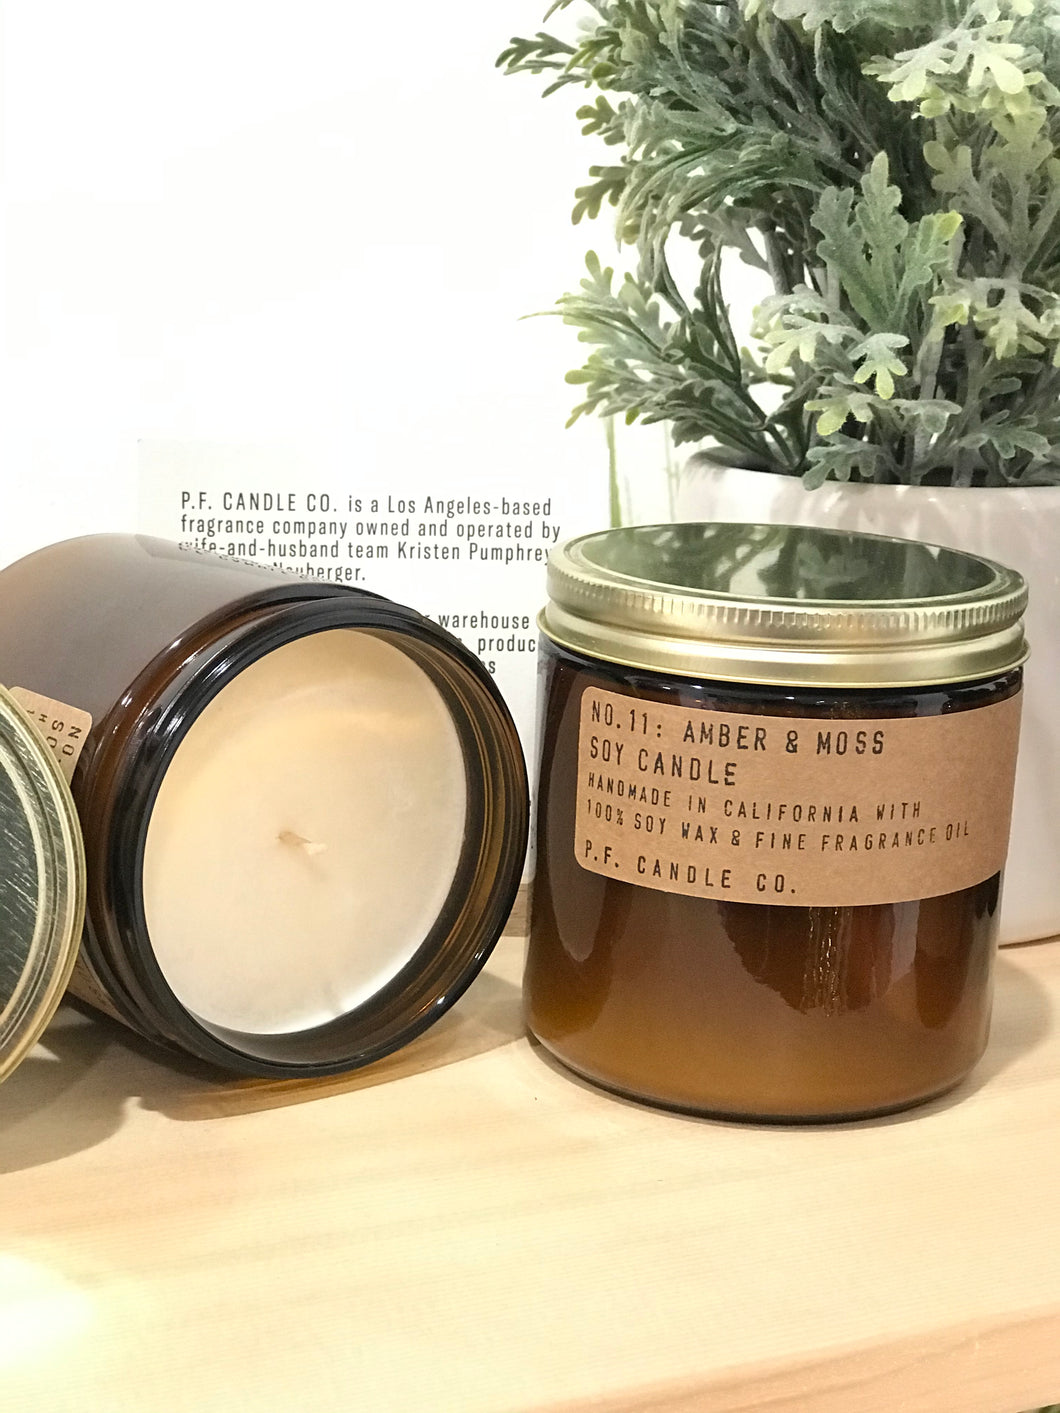 no. 11: amber & moss soy candle 12.5oz -alwaysspecialgifts.com